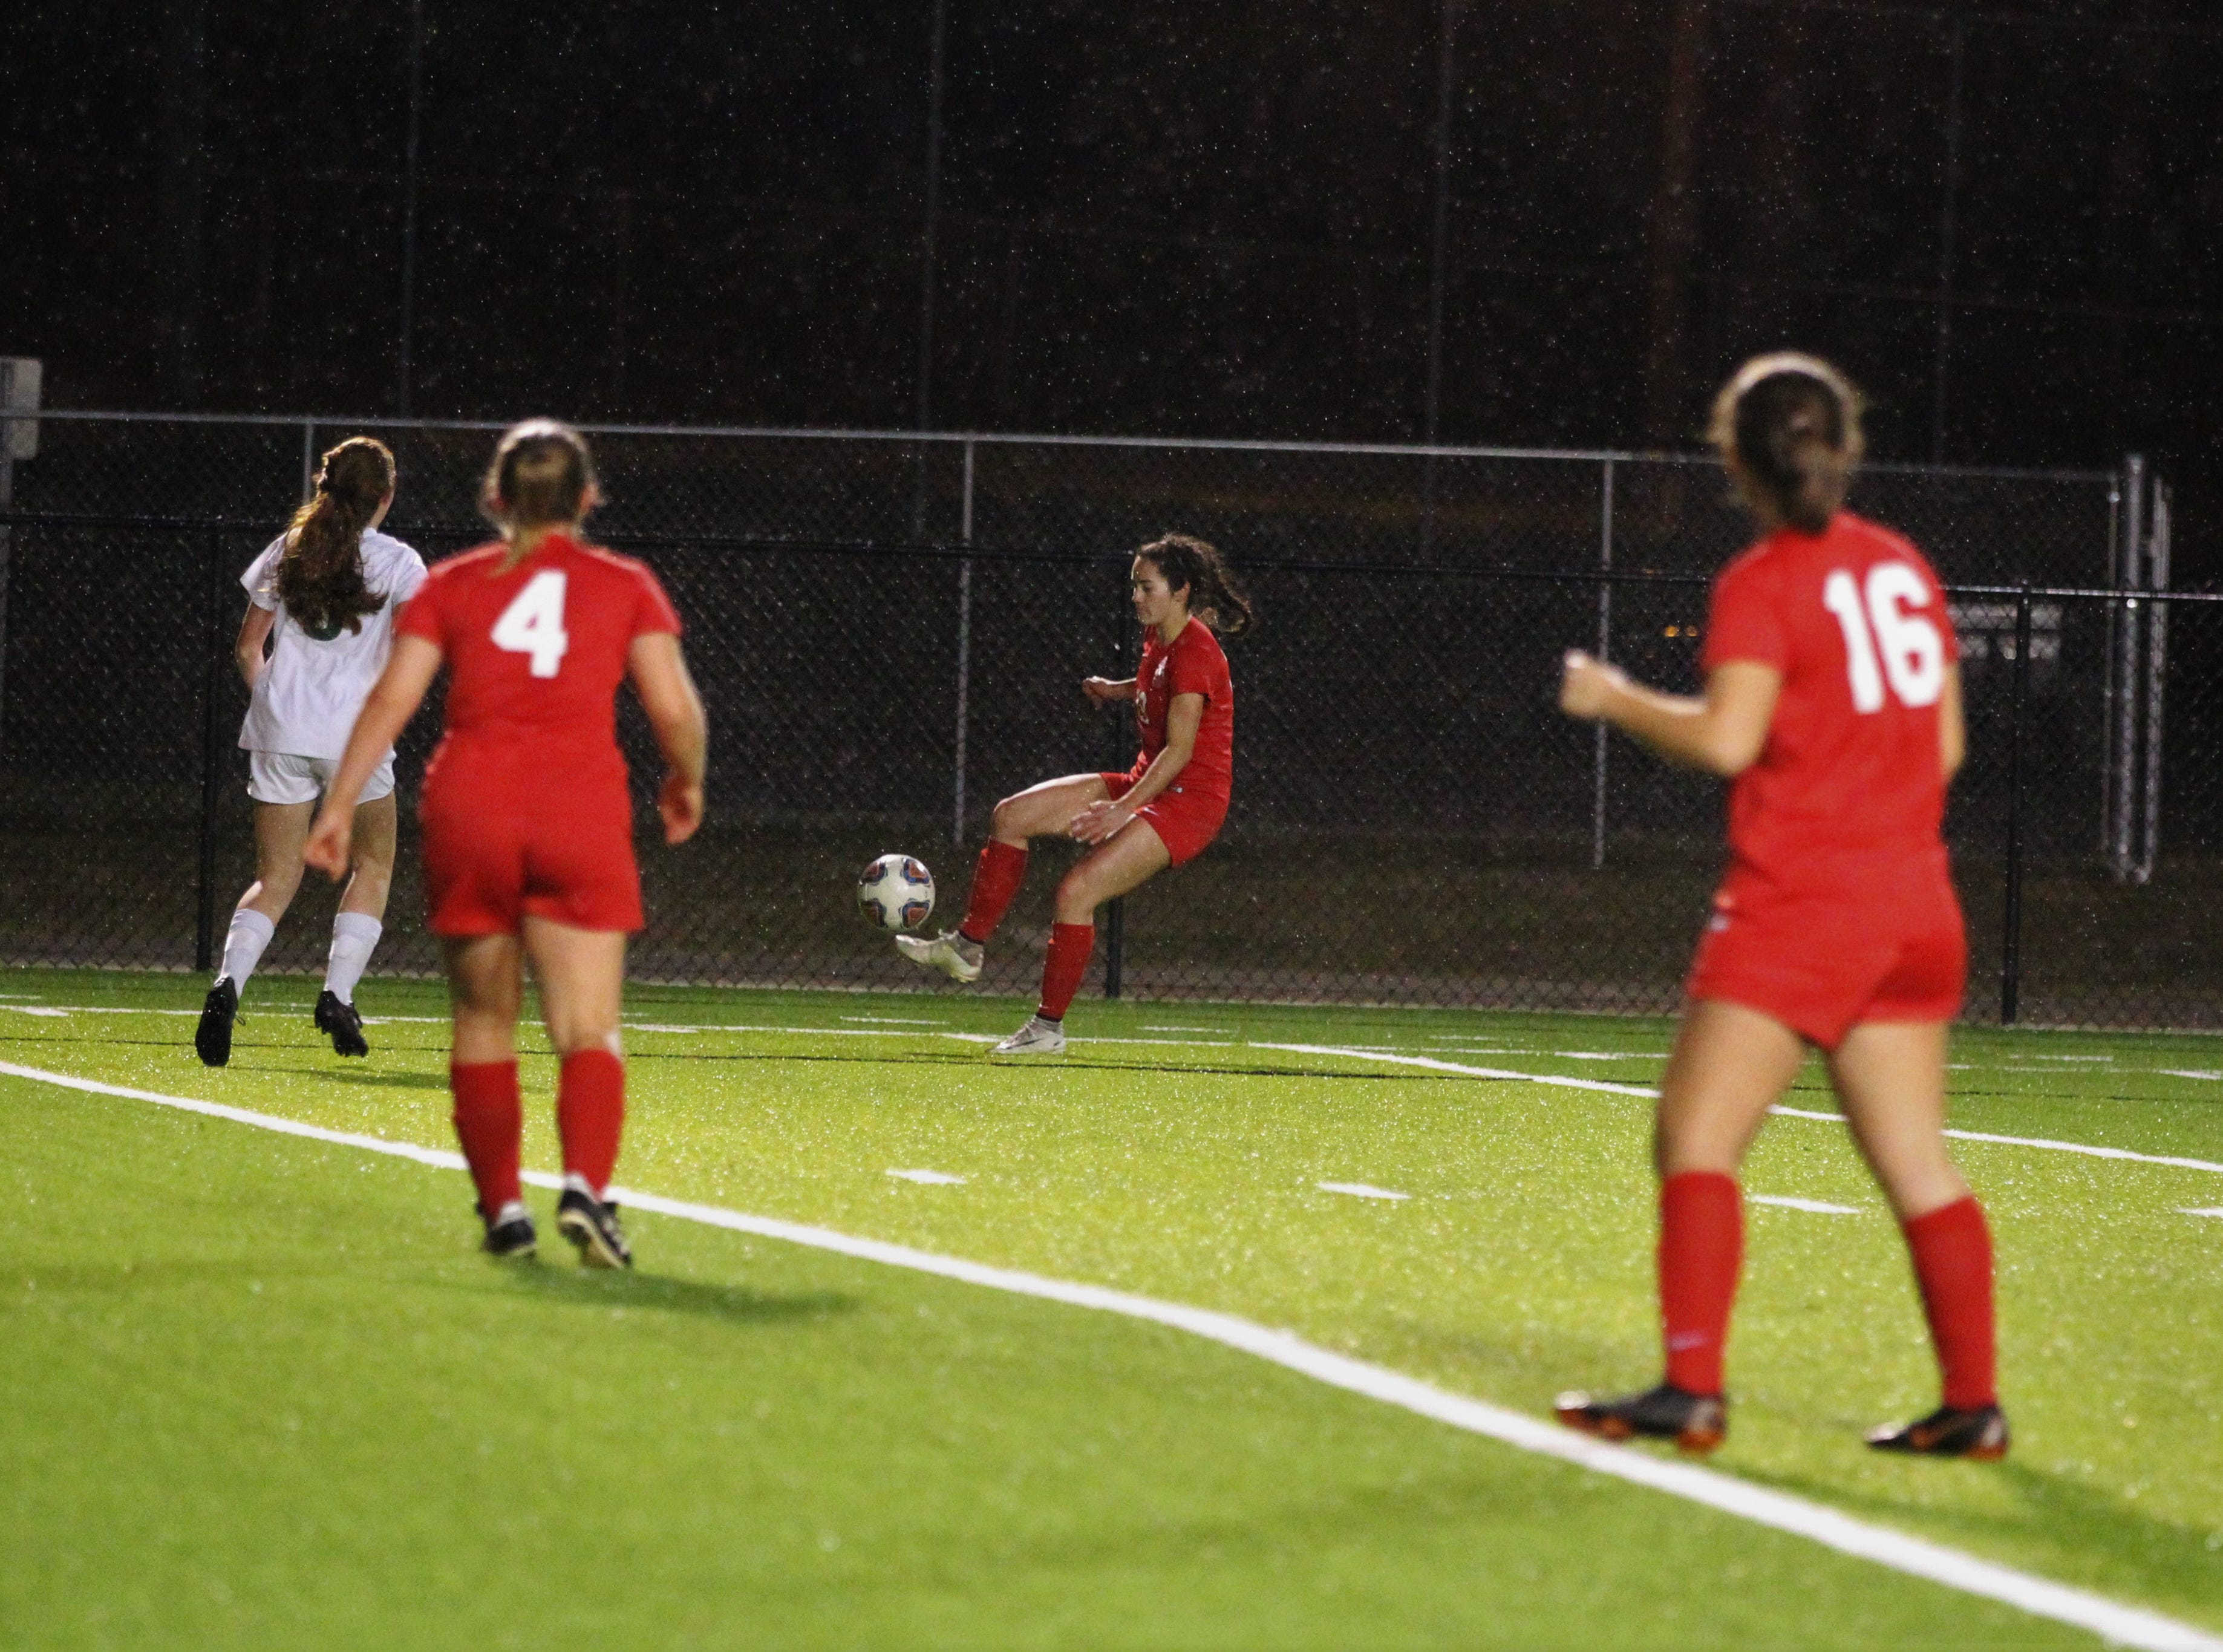 Leon's Liney Brantley plays across into the box as Leon's girls soccer team beat Lincoln in the District 2-4A championship on Feb. 1, 2019.